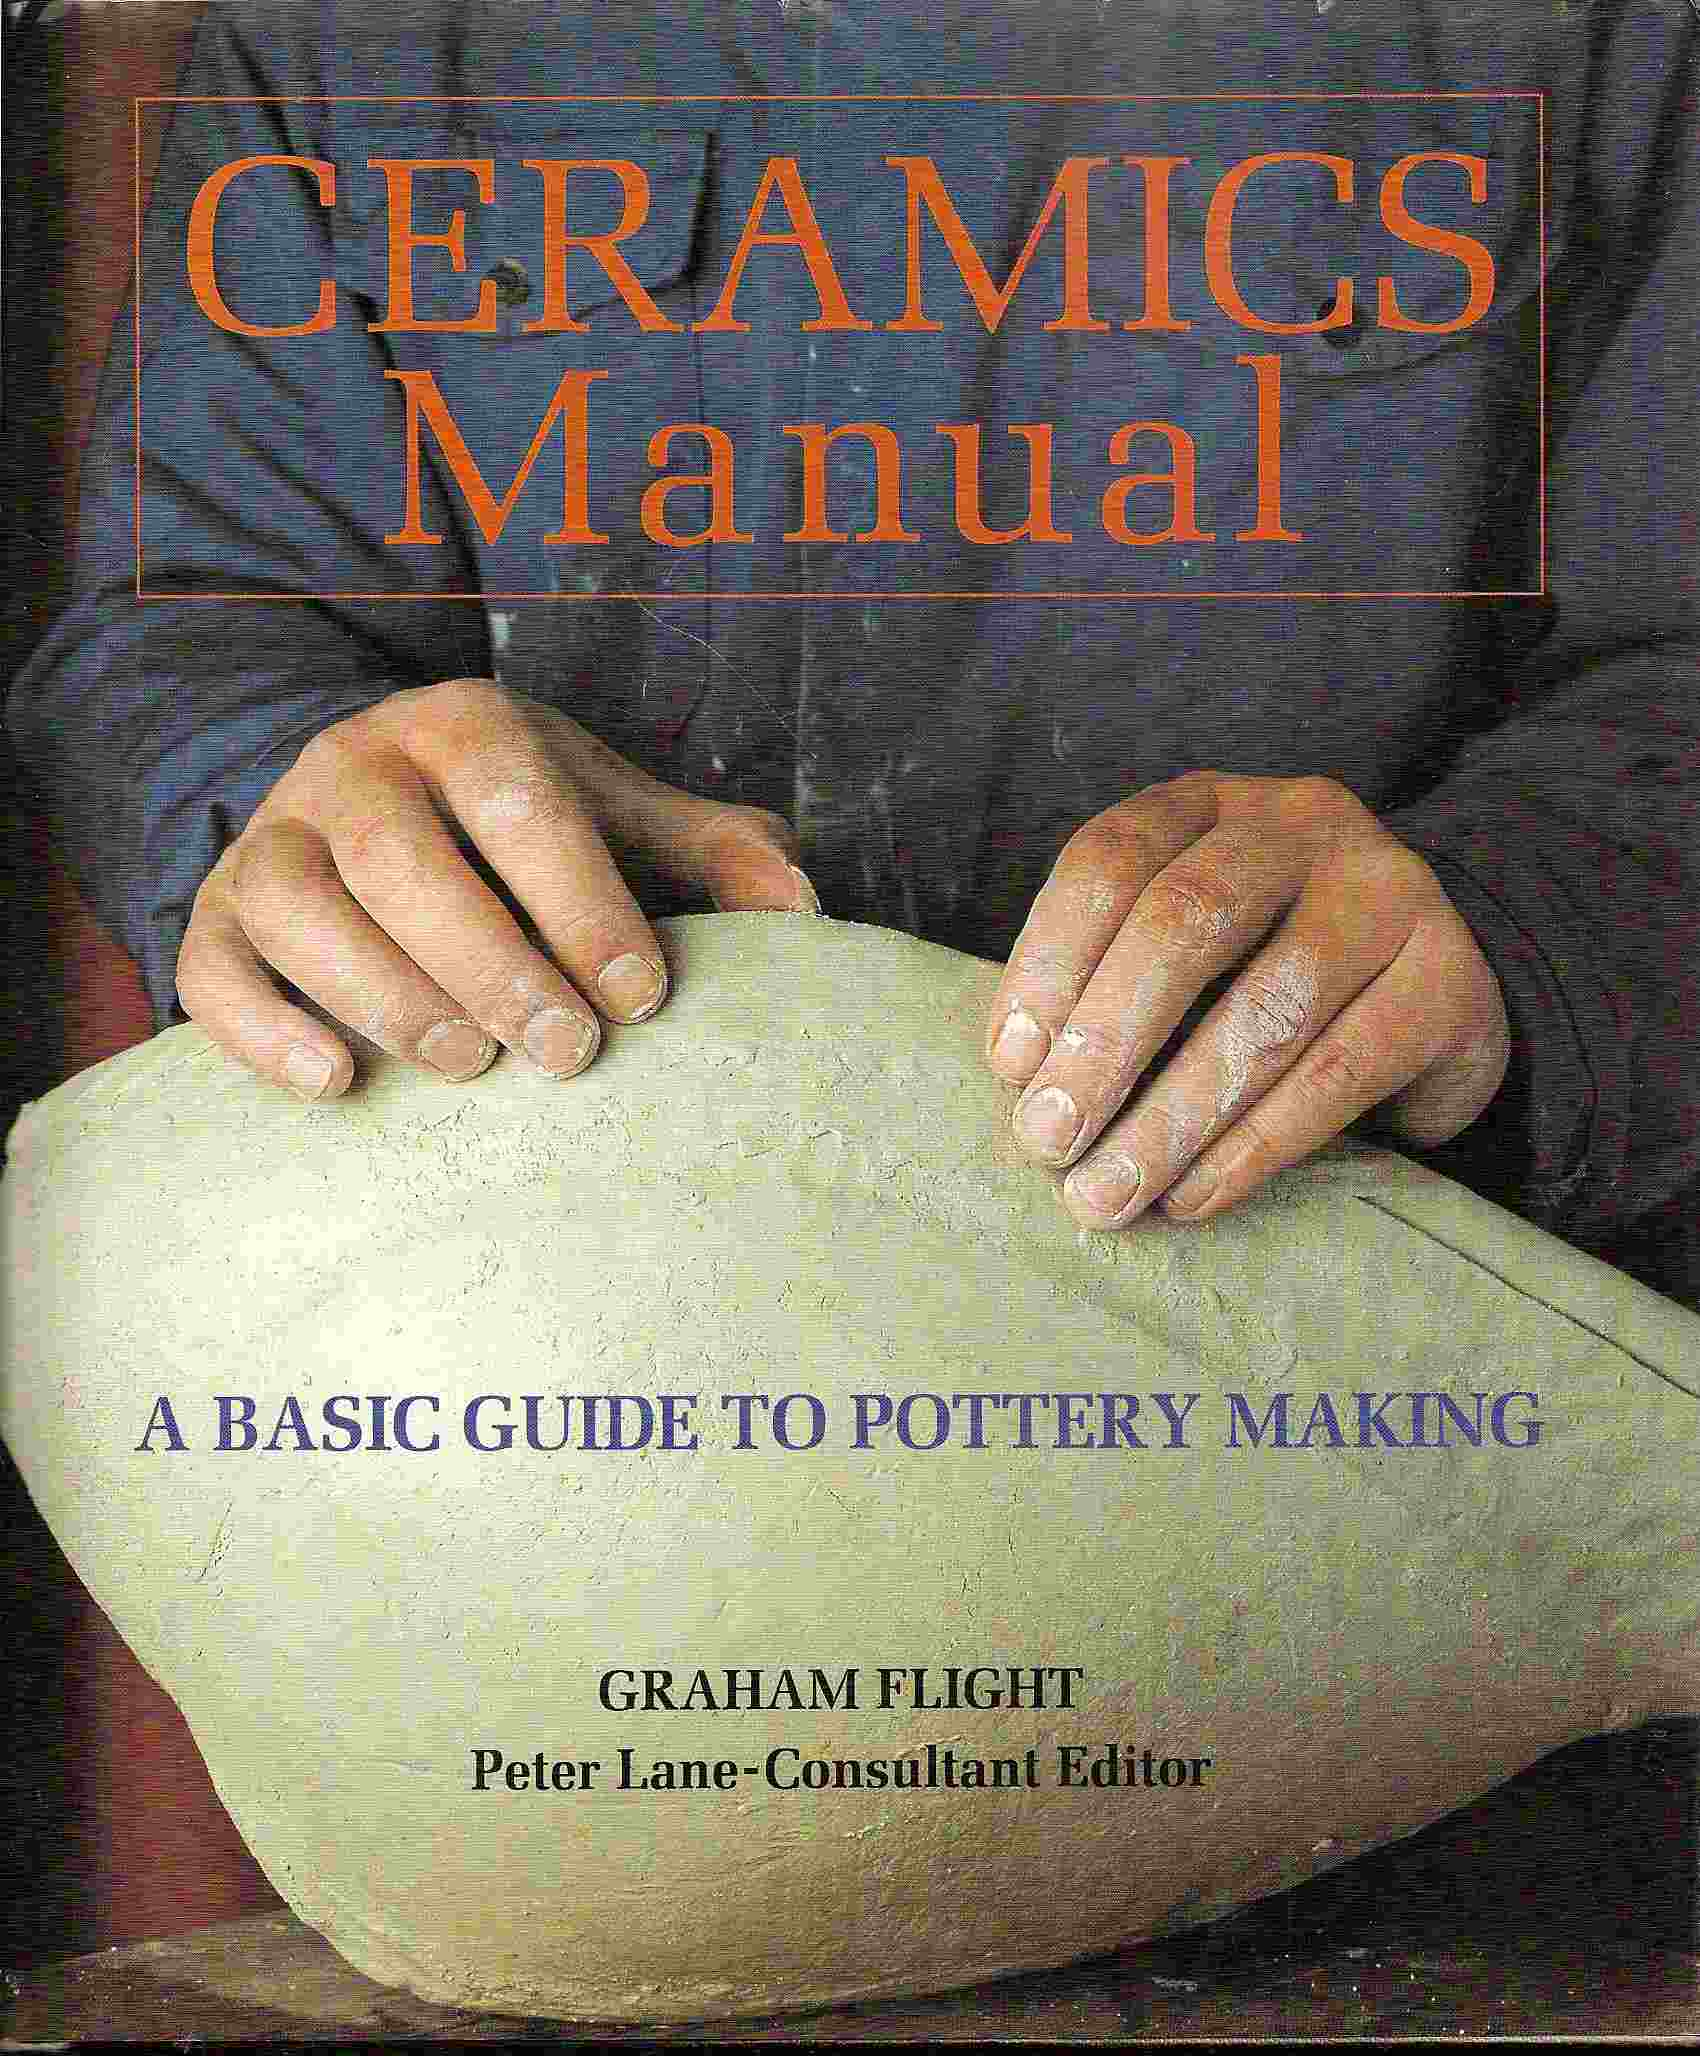 Image for A Basic Guide to Pottery Making; CERAMICS MANUAL